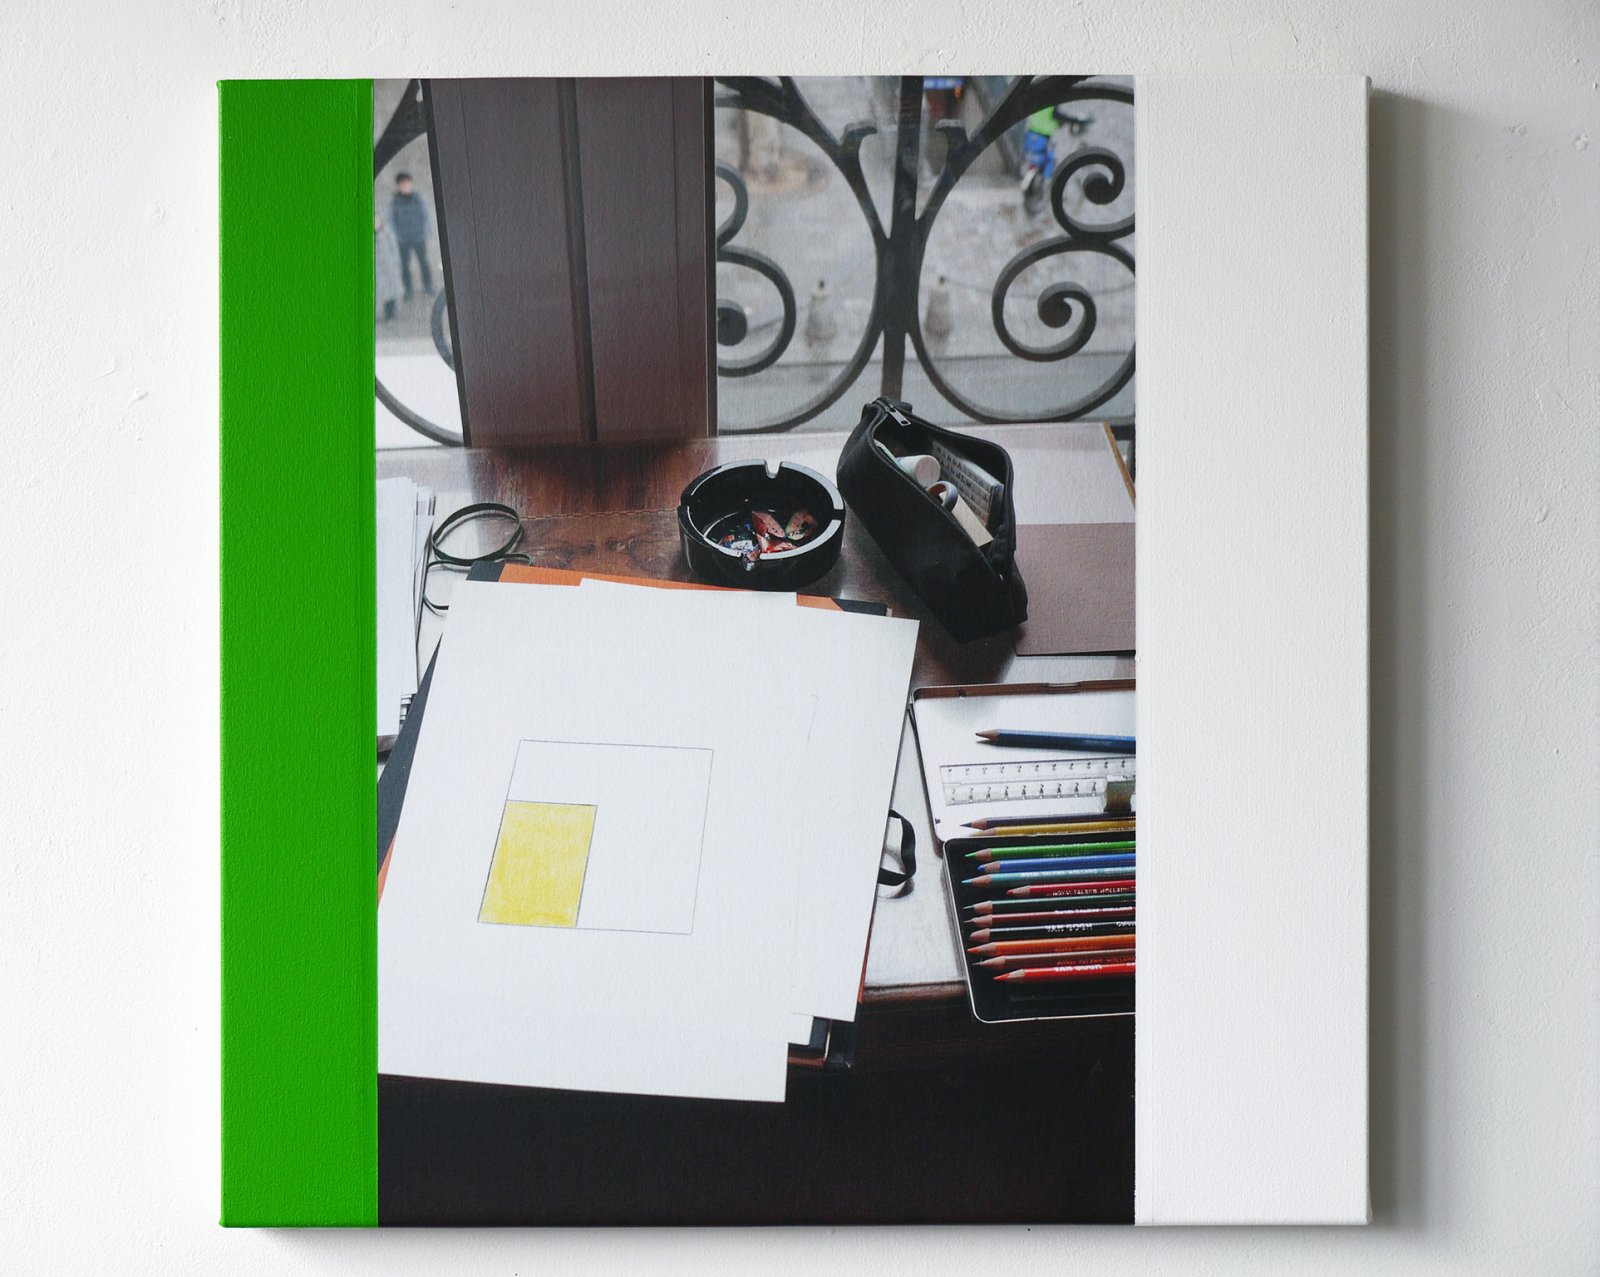 Ian Wallace,Abstract Drawing (Hotel de Nice, Paris, February 2, 2010, III), 2010,photolaminate with acrylic on canvas,48 x 36 in. (122 x 91 cm)